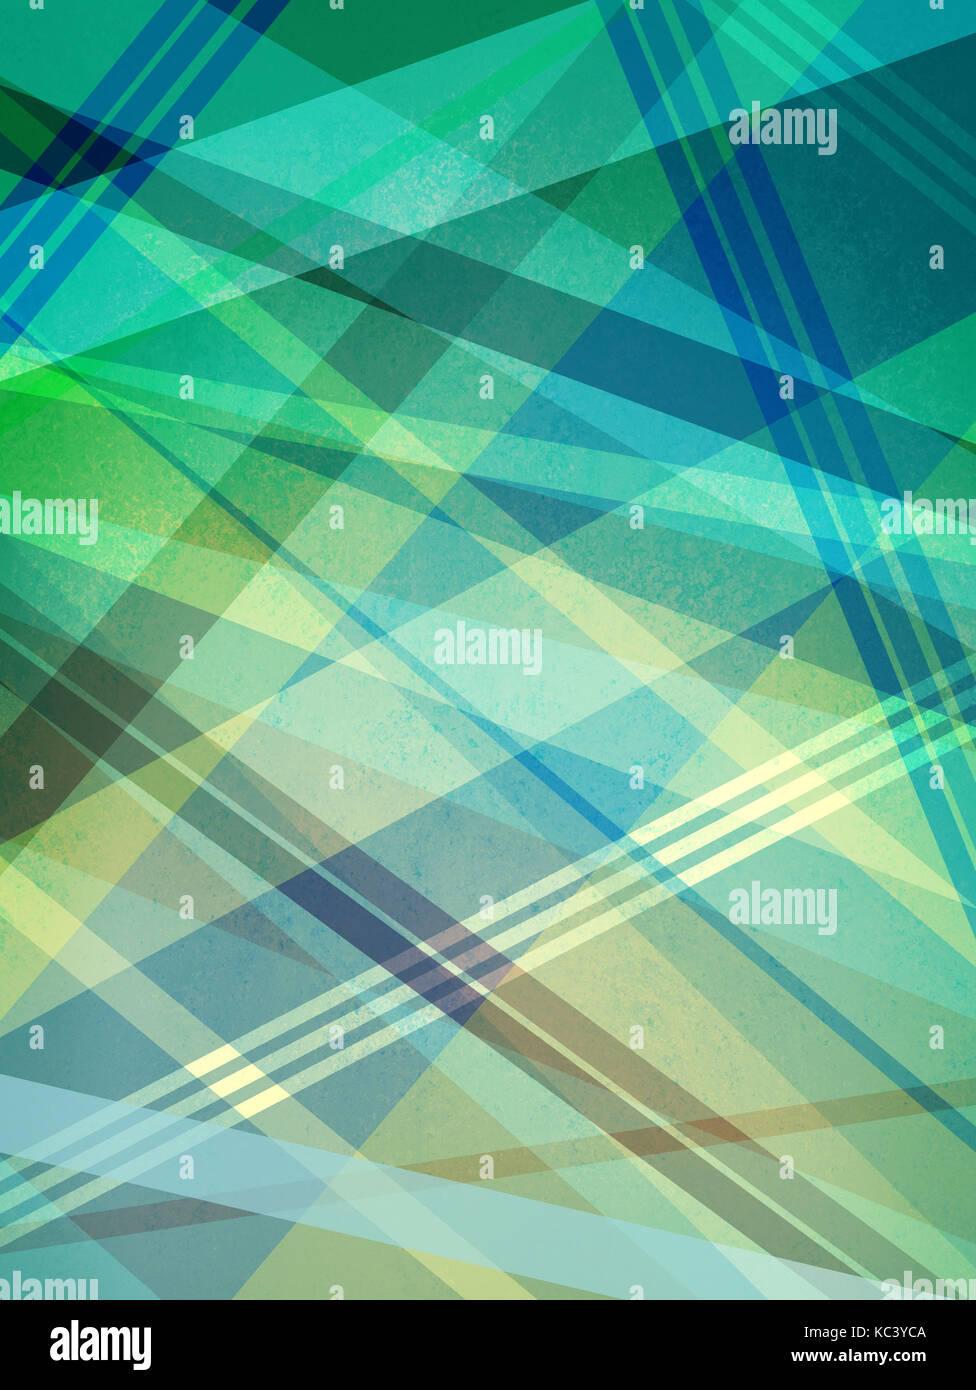 blue green yellow and white background design with intersecting lines and abstract geometric shapes in random pattern, Stock Photo